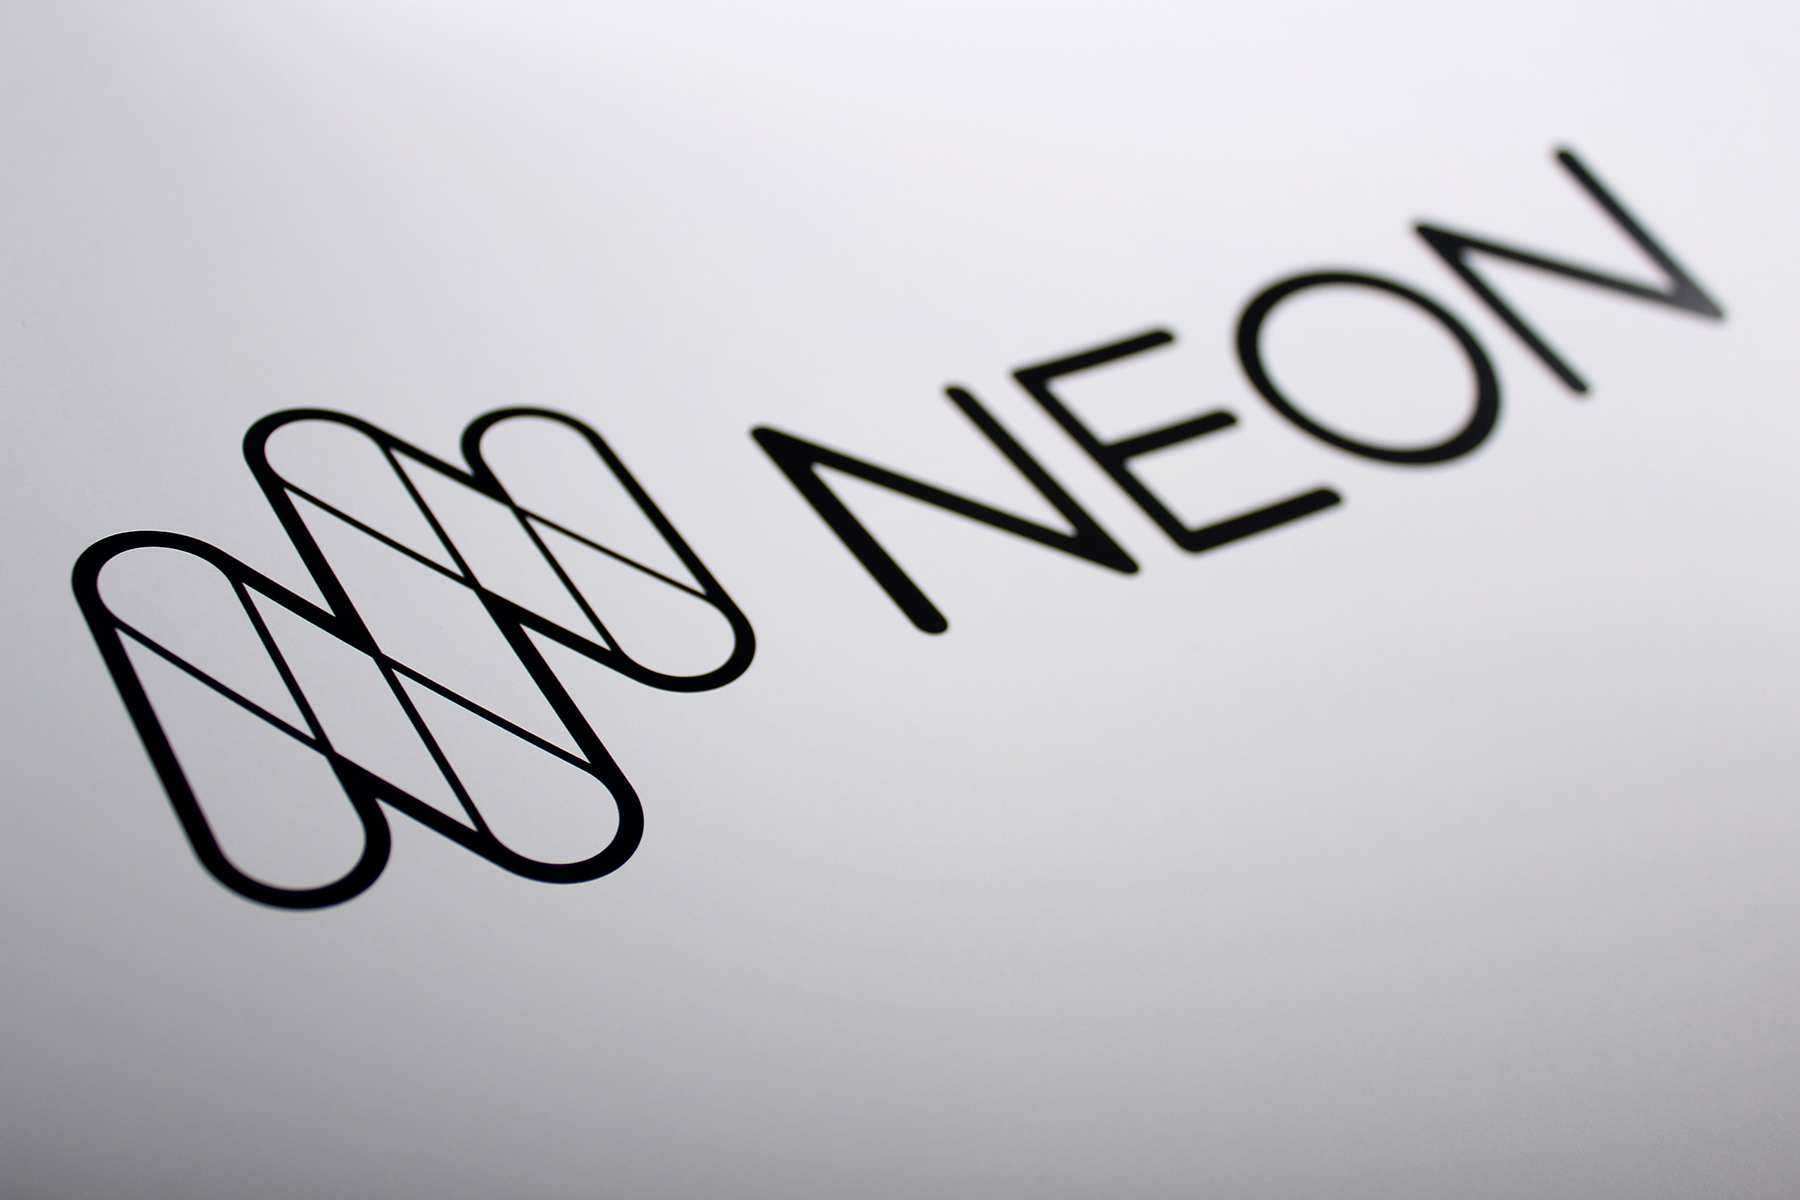 A single colour version of the mark was created afresh, to be used for etching, merchandising and single colour print.